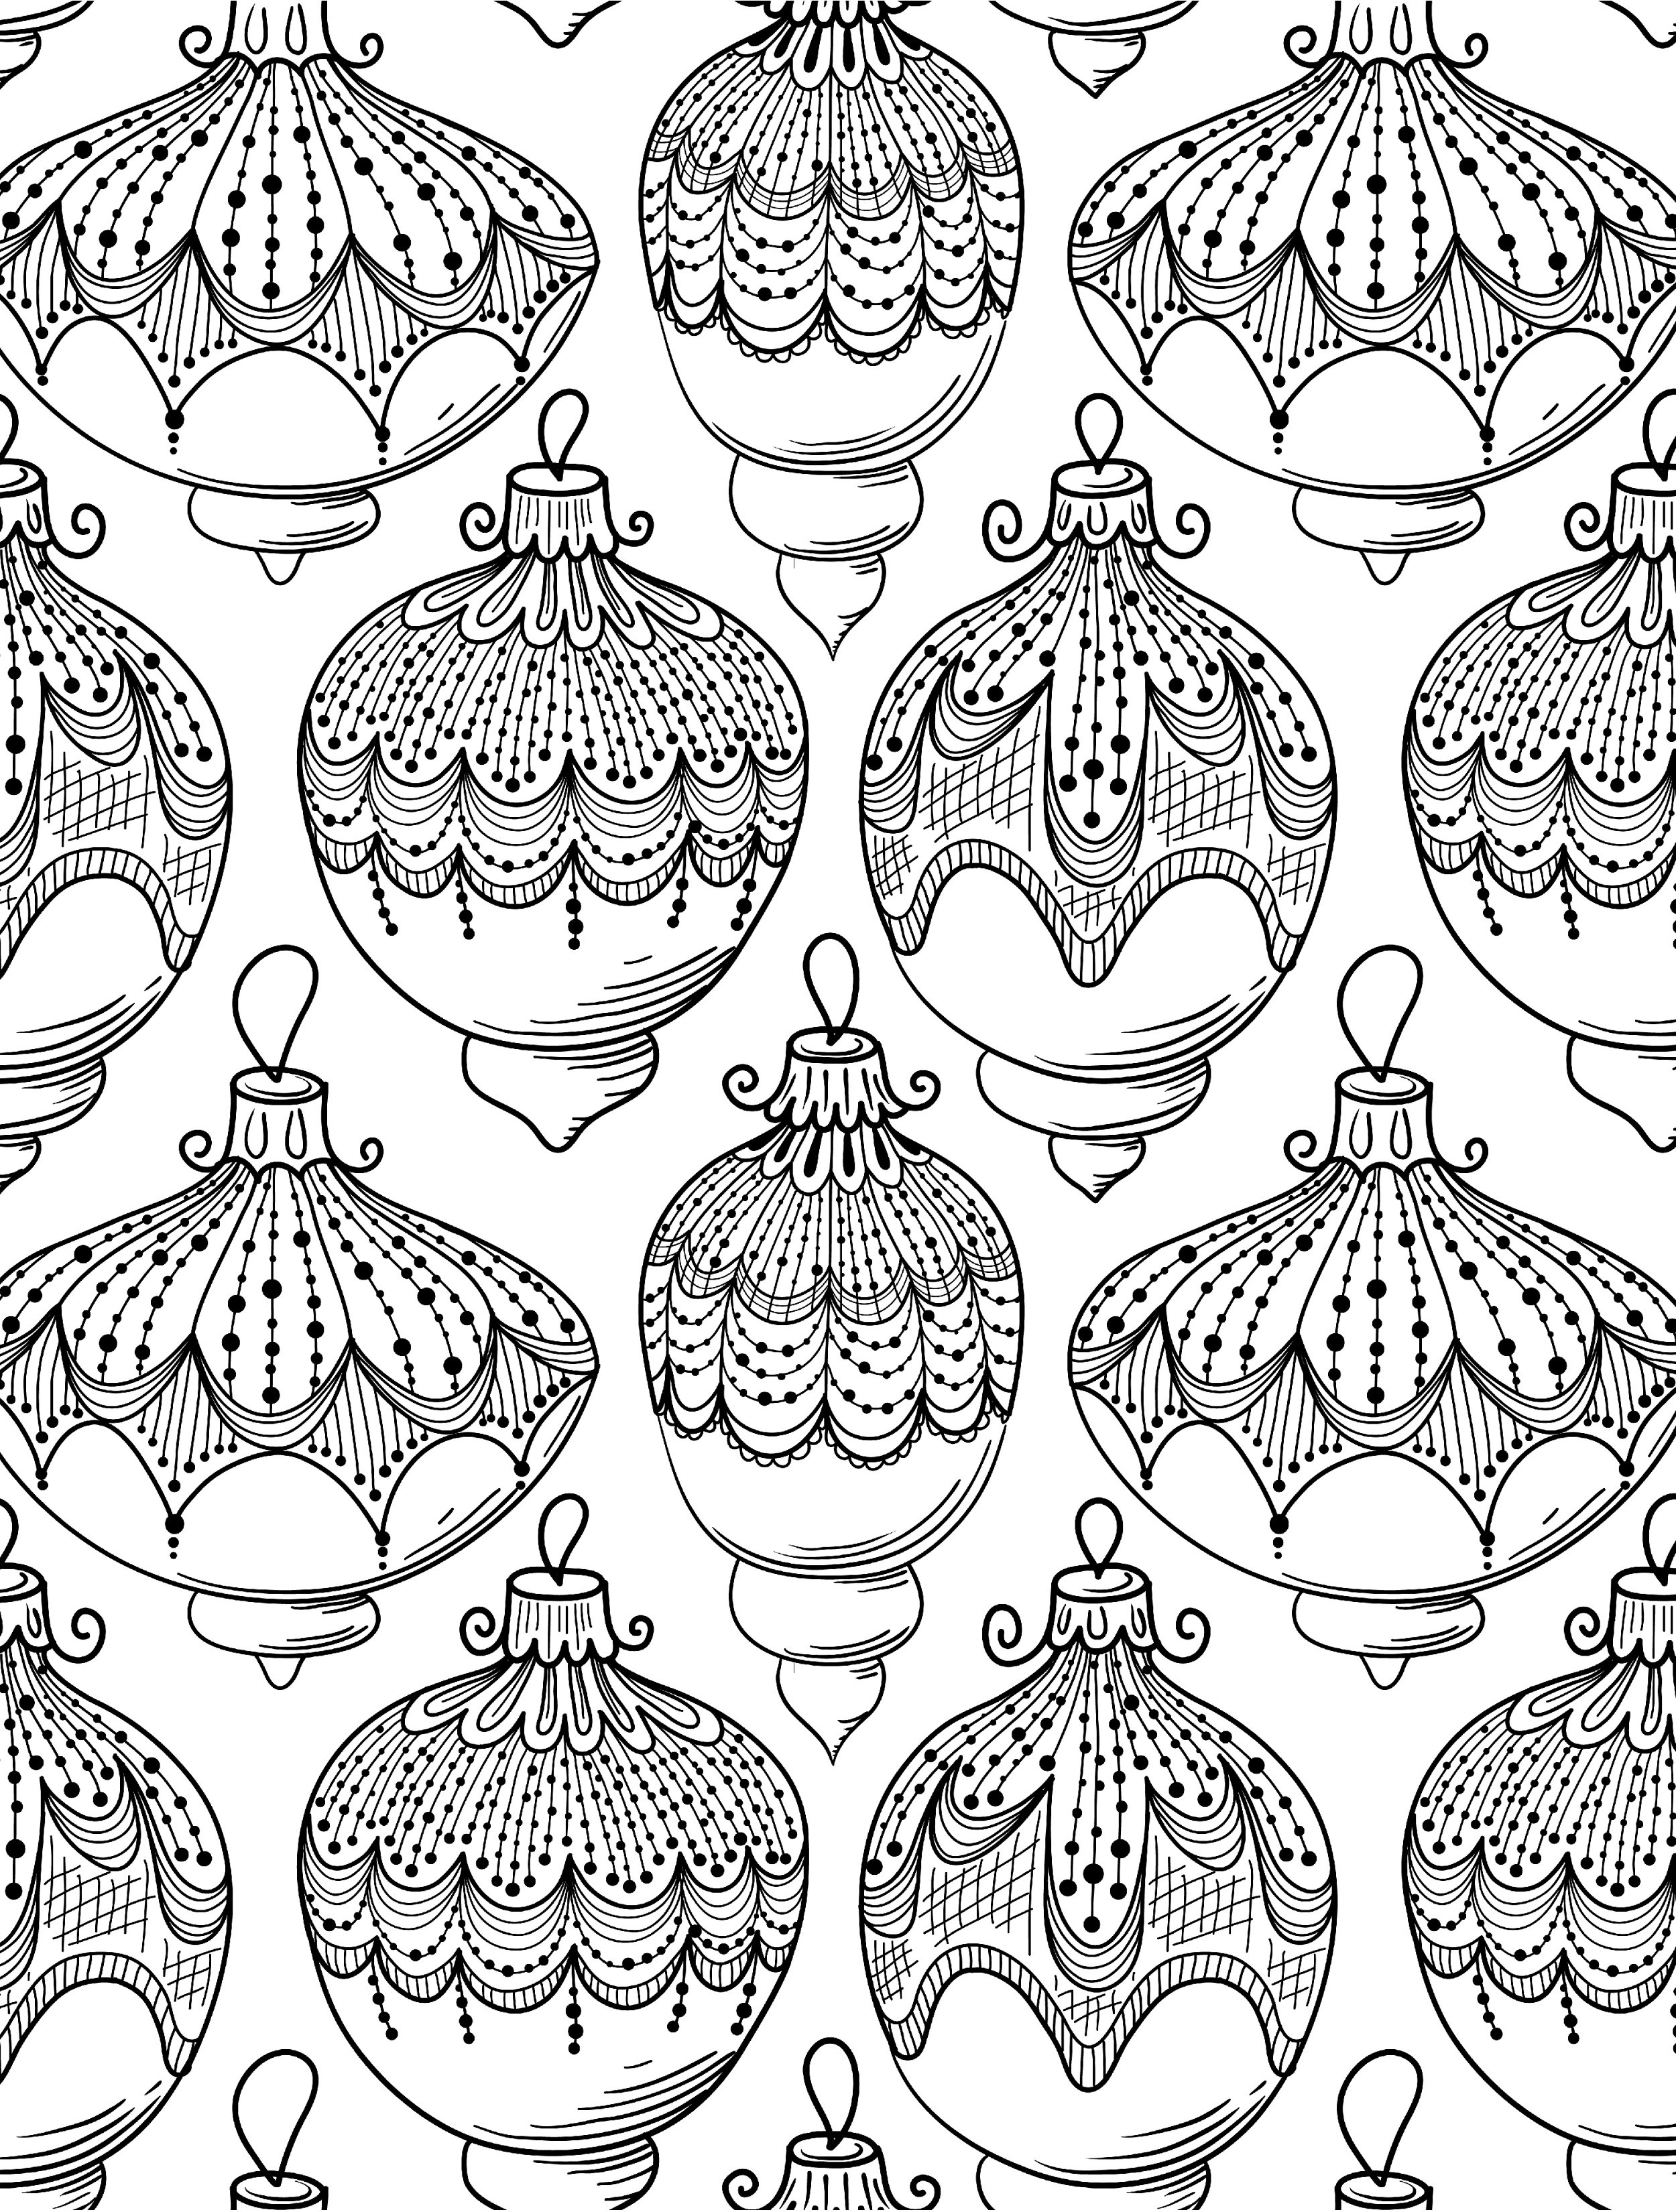 Best ideas about Adult Printable Coloring Pages . Save or Pin Coloring Pages for Adults Free Printable 42 Collections Now.